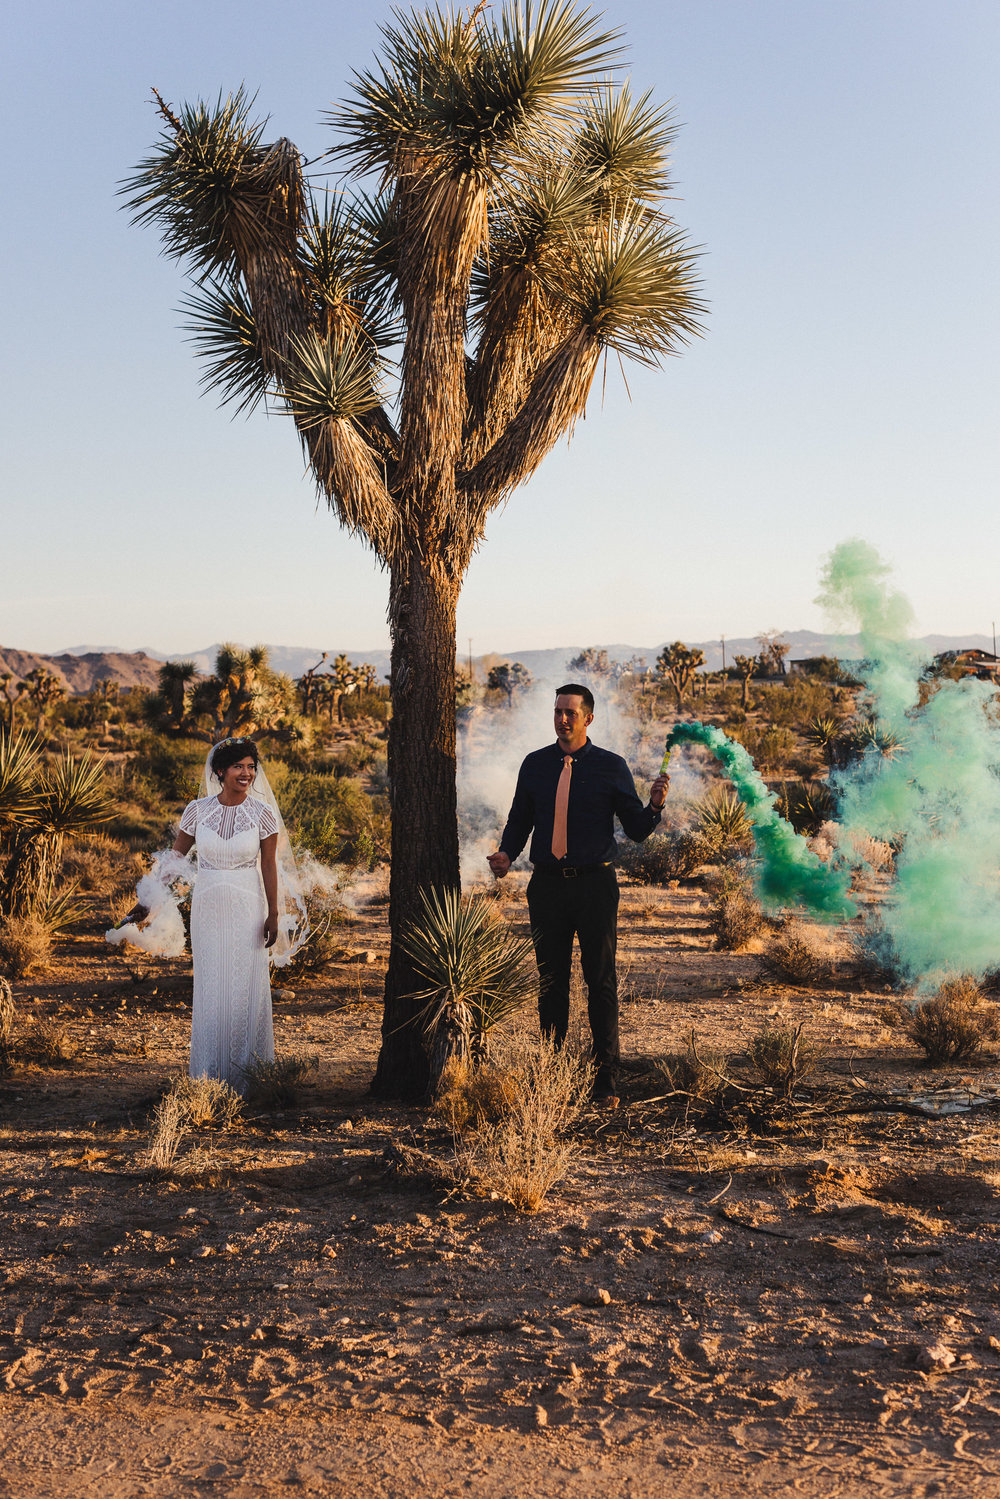 sJ + N - Joshua Tree, CA - 08 Bride + Groom-12.jpg